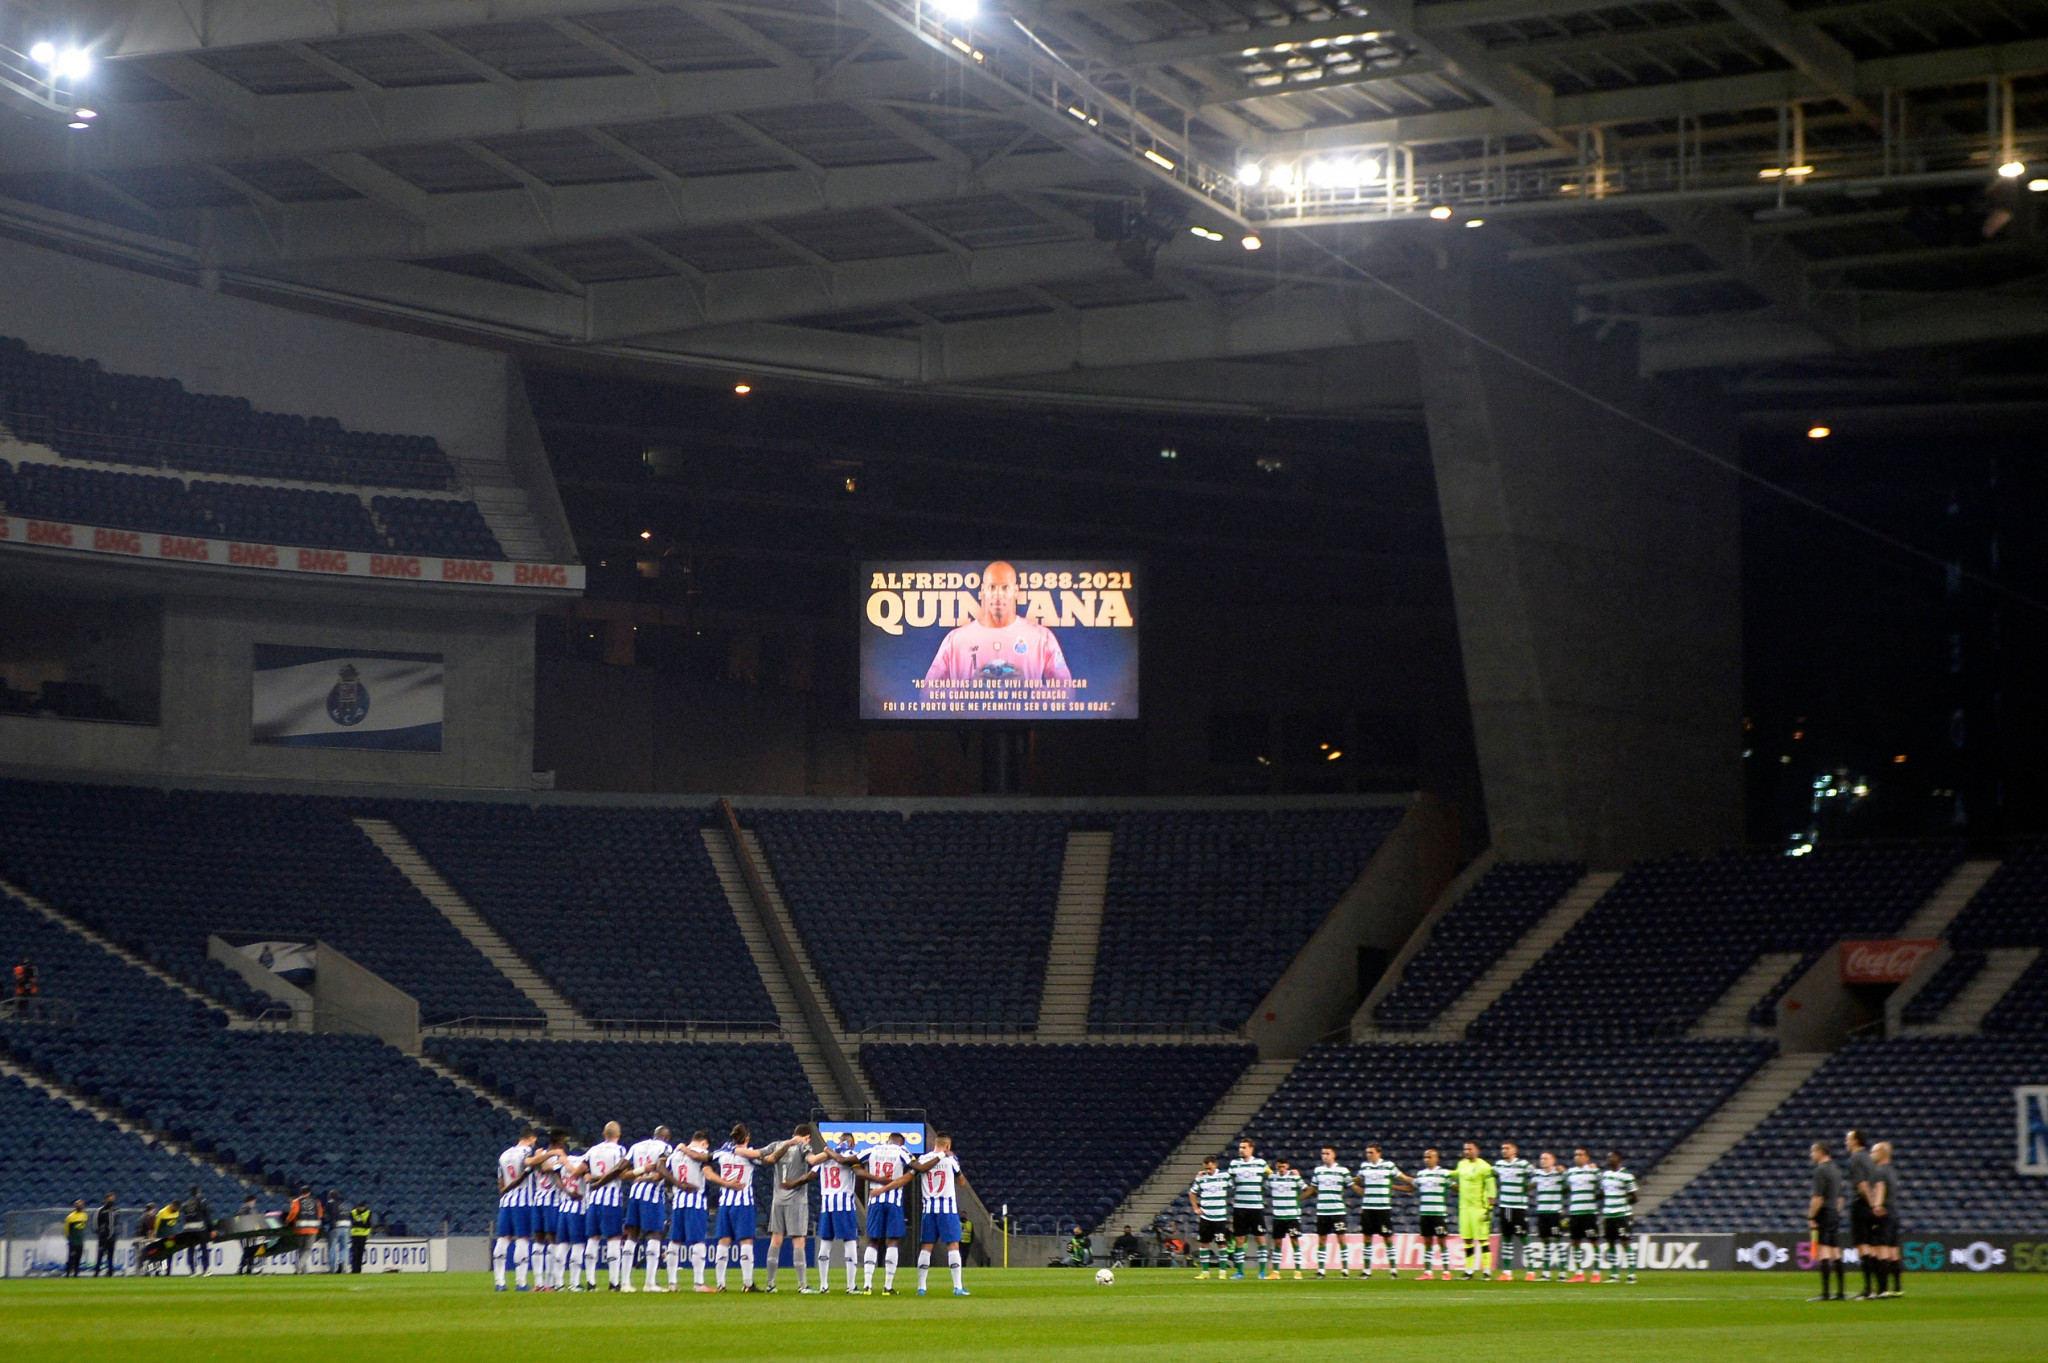 UEFA Champions League final moved to Portugal to allow fans to attend